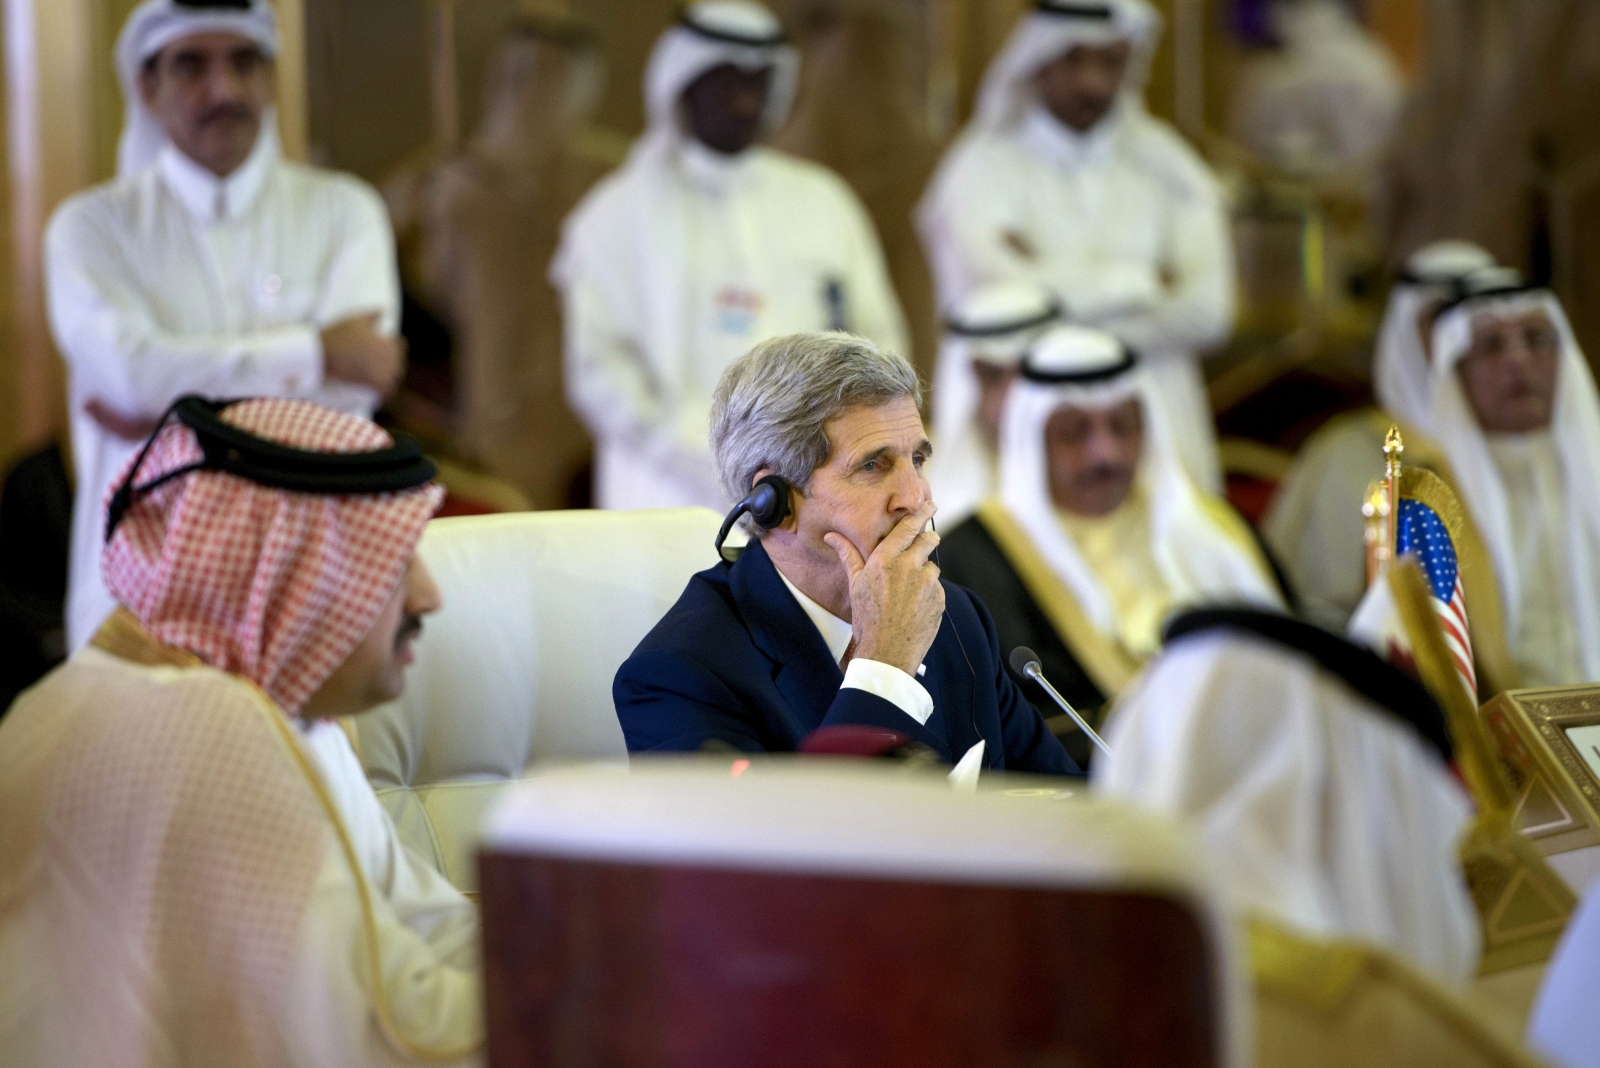 John Kerry Middle East tour